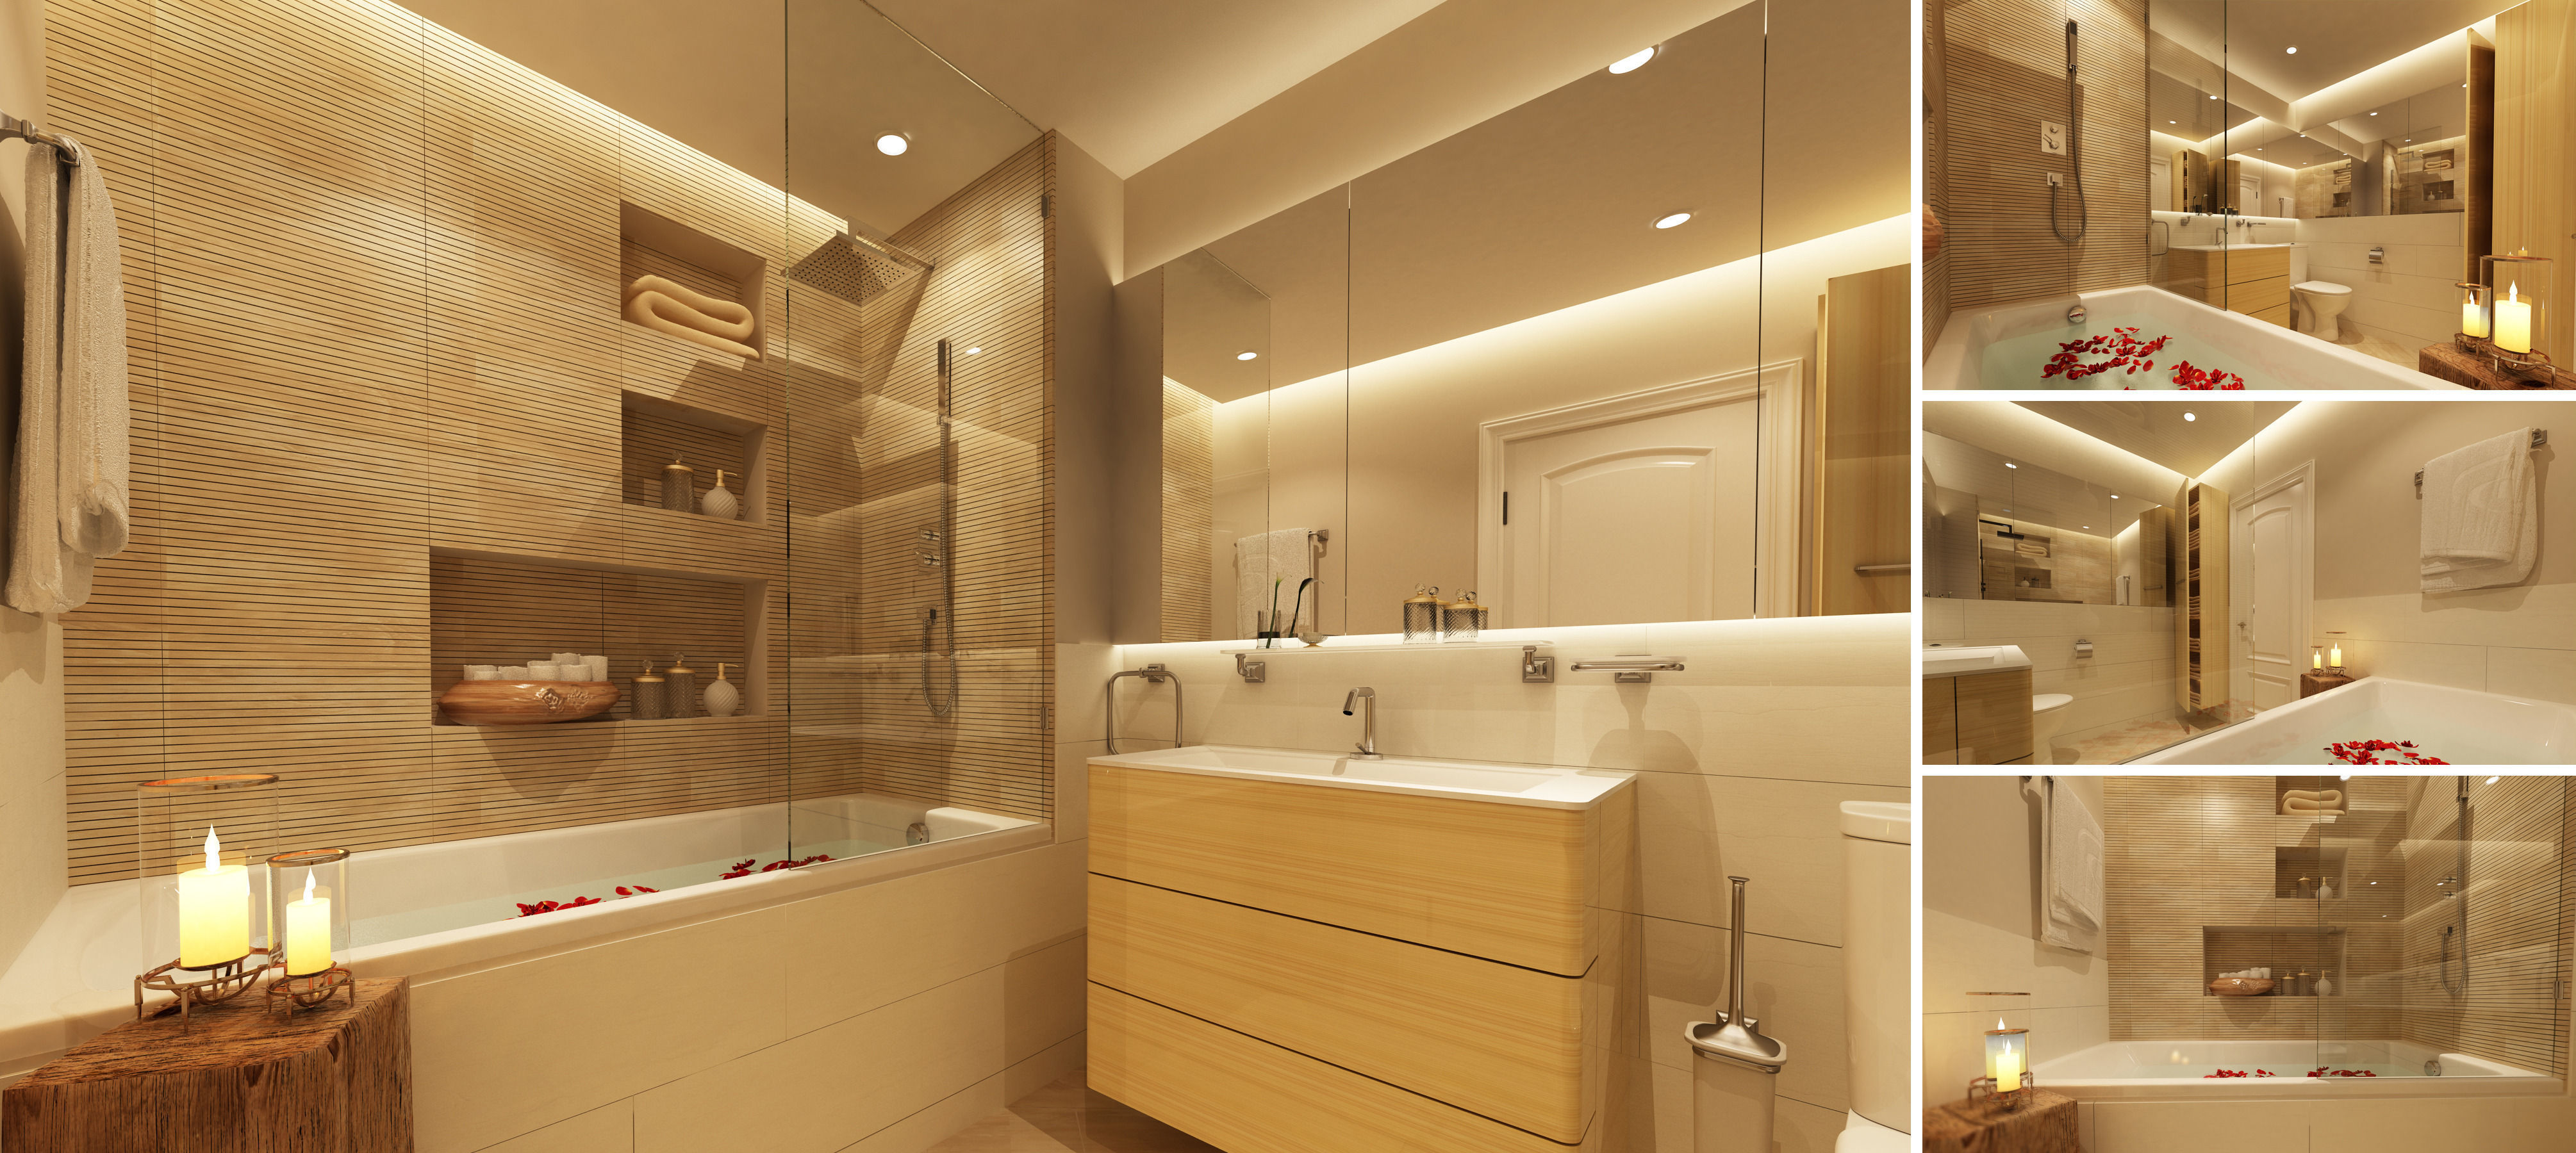 Master bathroom 3d model max for Bathroom models images